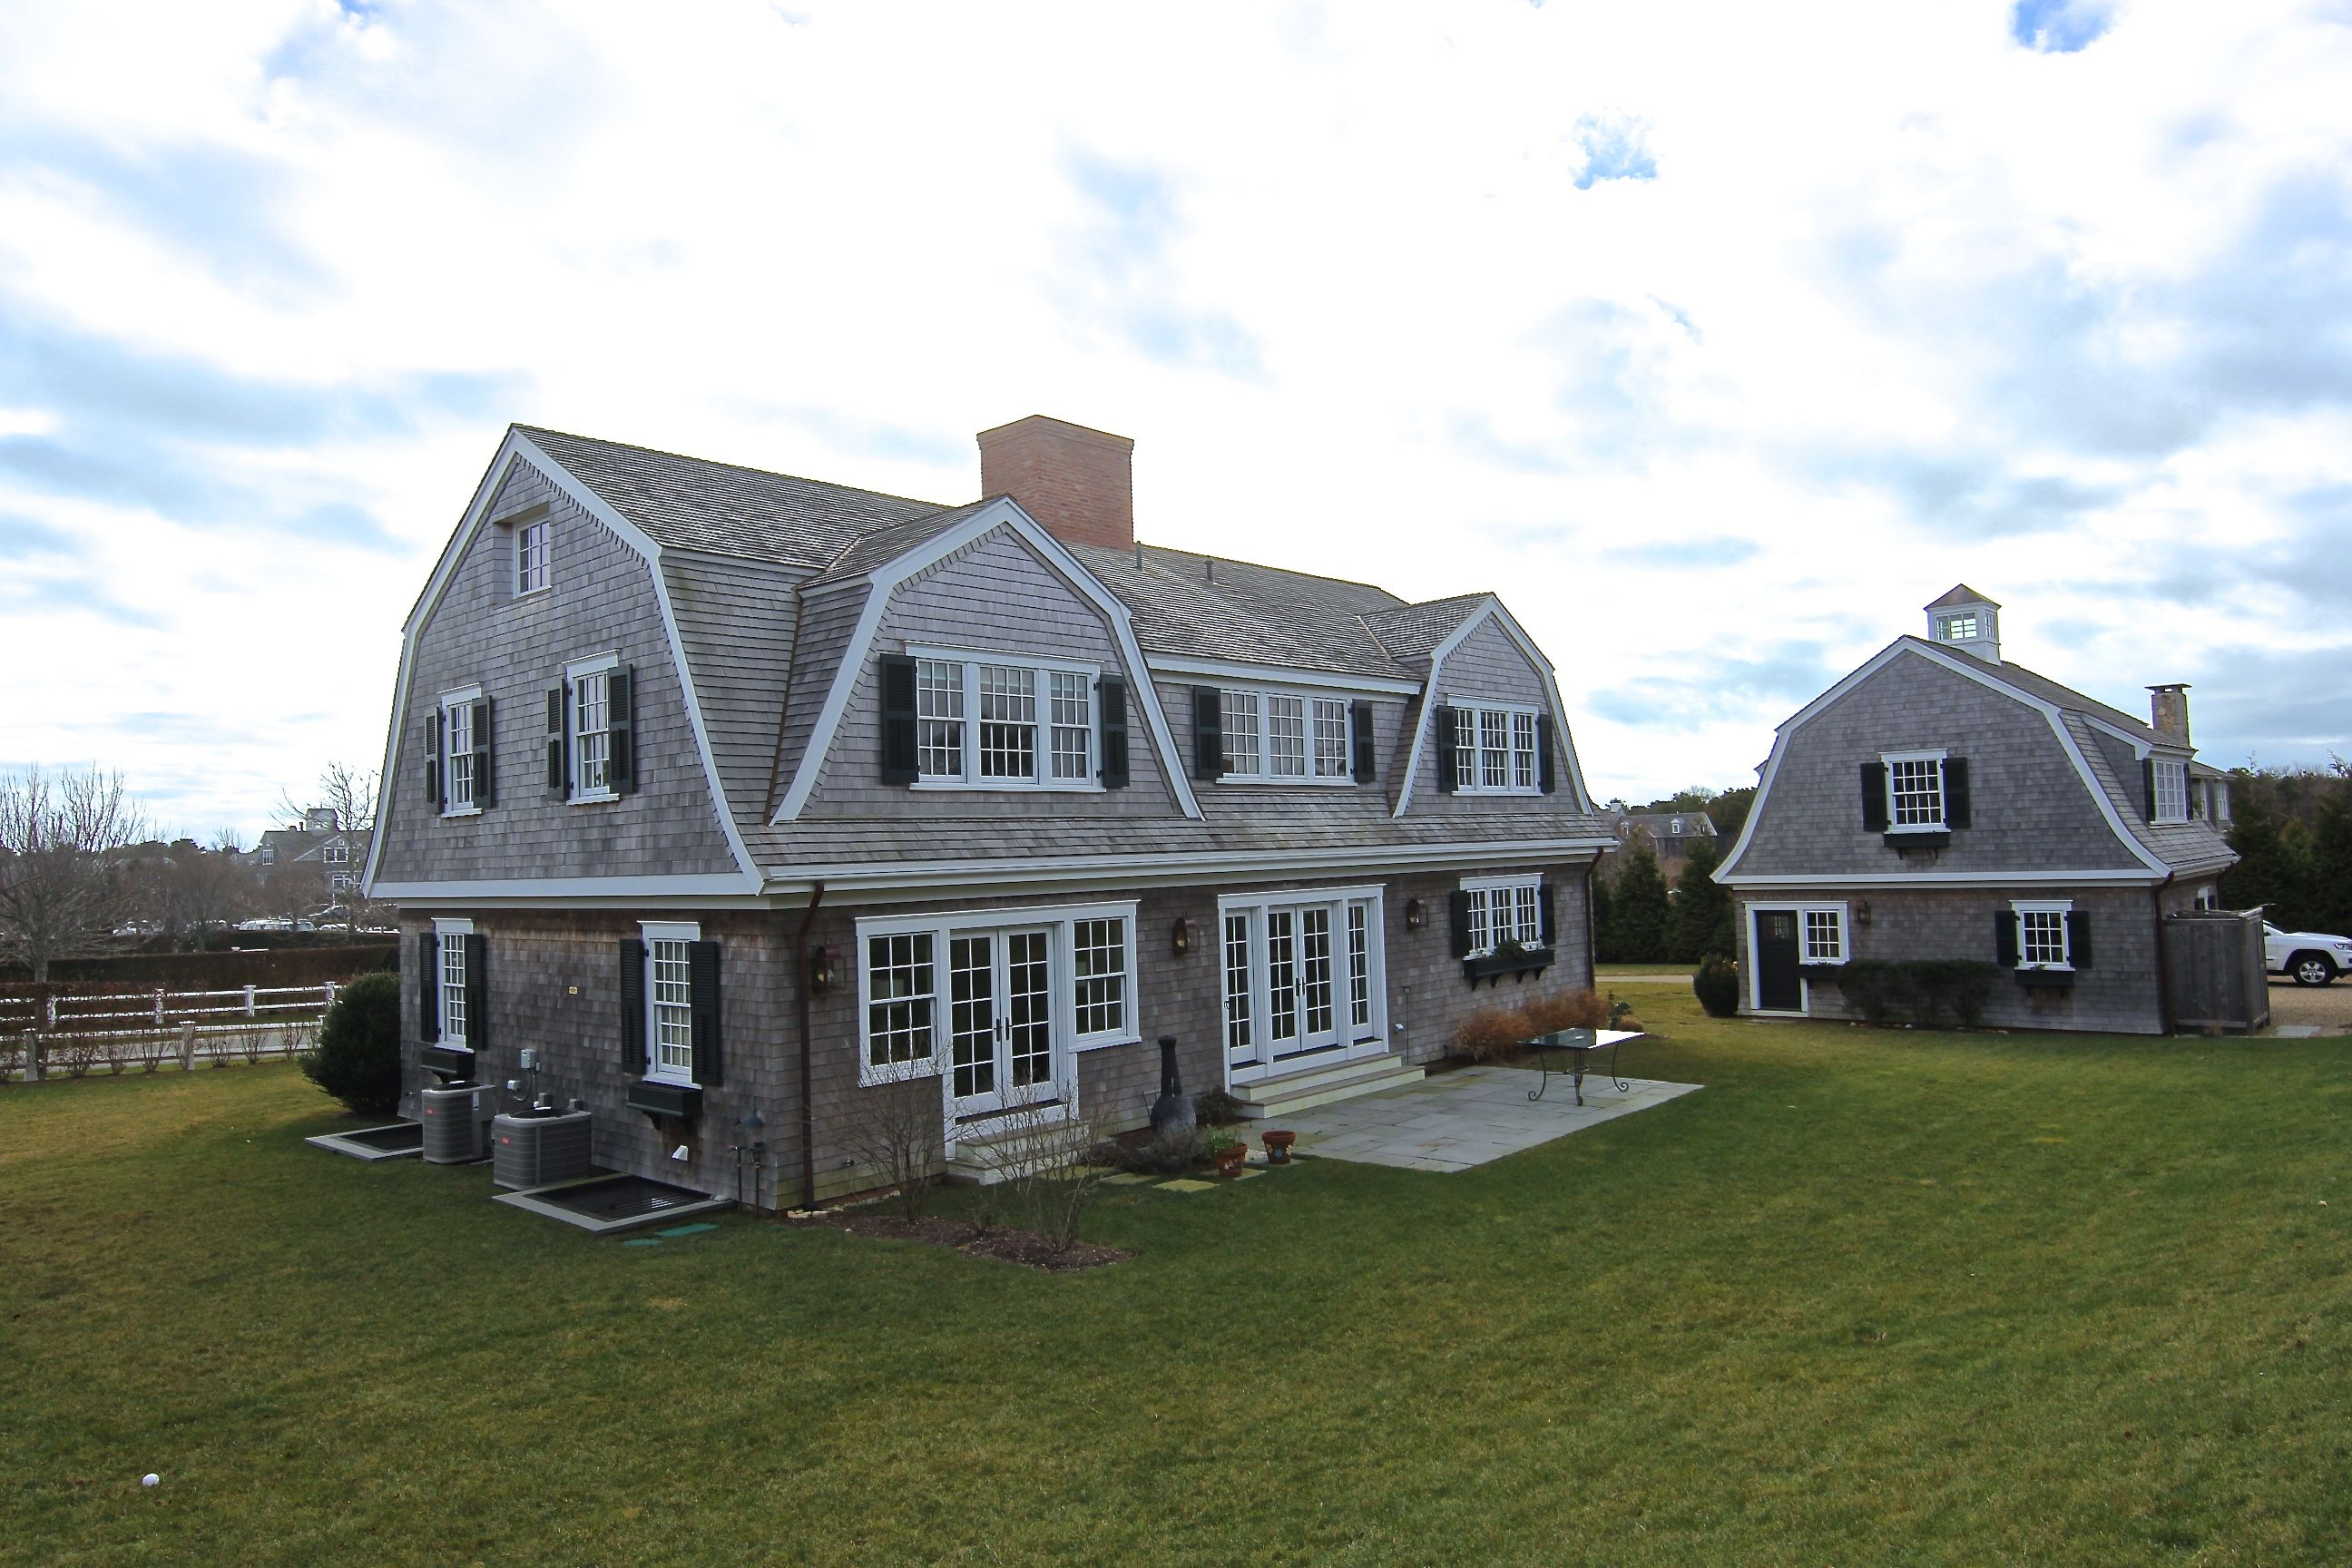 Additional photo for property listing at 14 Field Club Drive 14 Field Club Drive Edgartown, Massachusetts,02539 United States